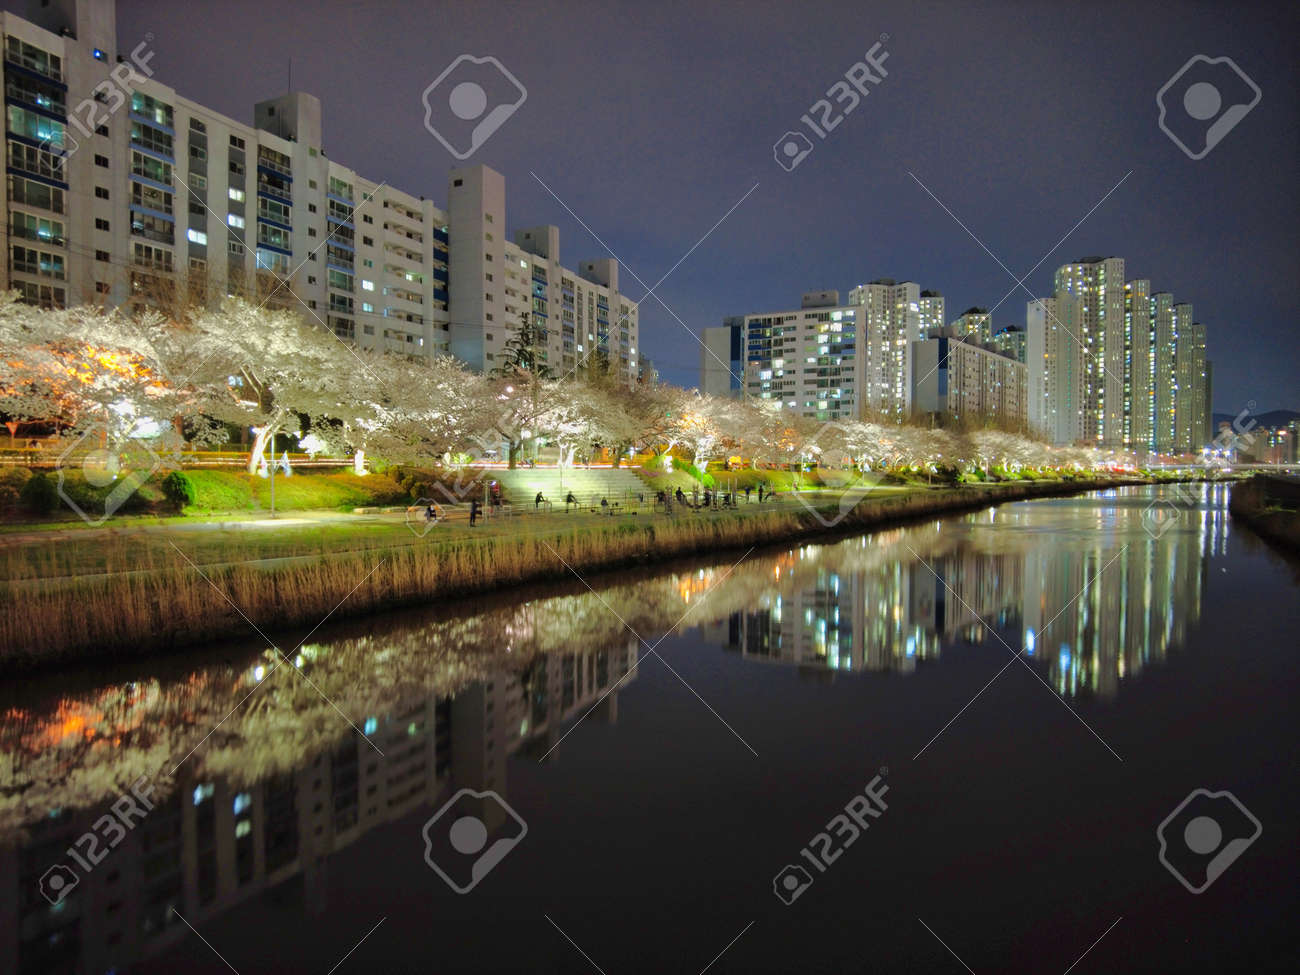 Night view of spring oncheoncheon stream, Busan, South Korea, Asia. - 167342948